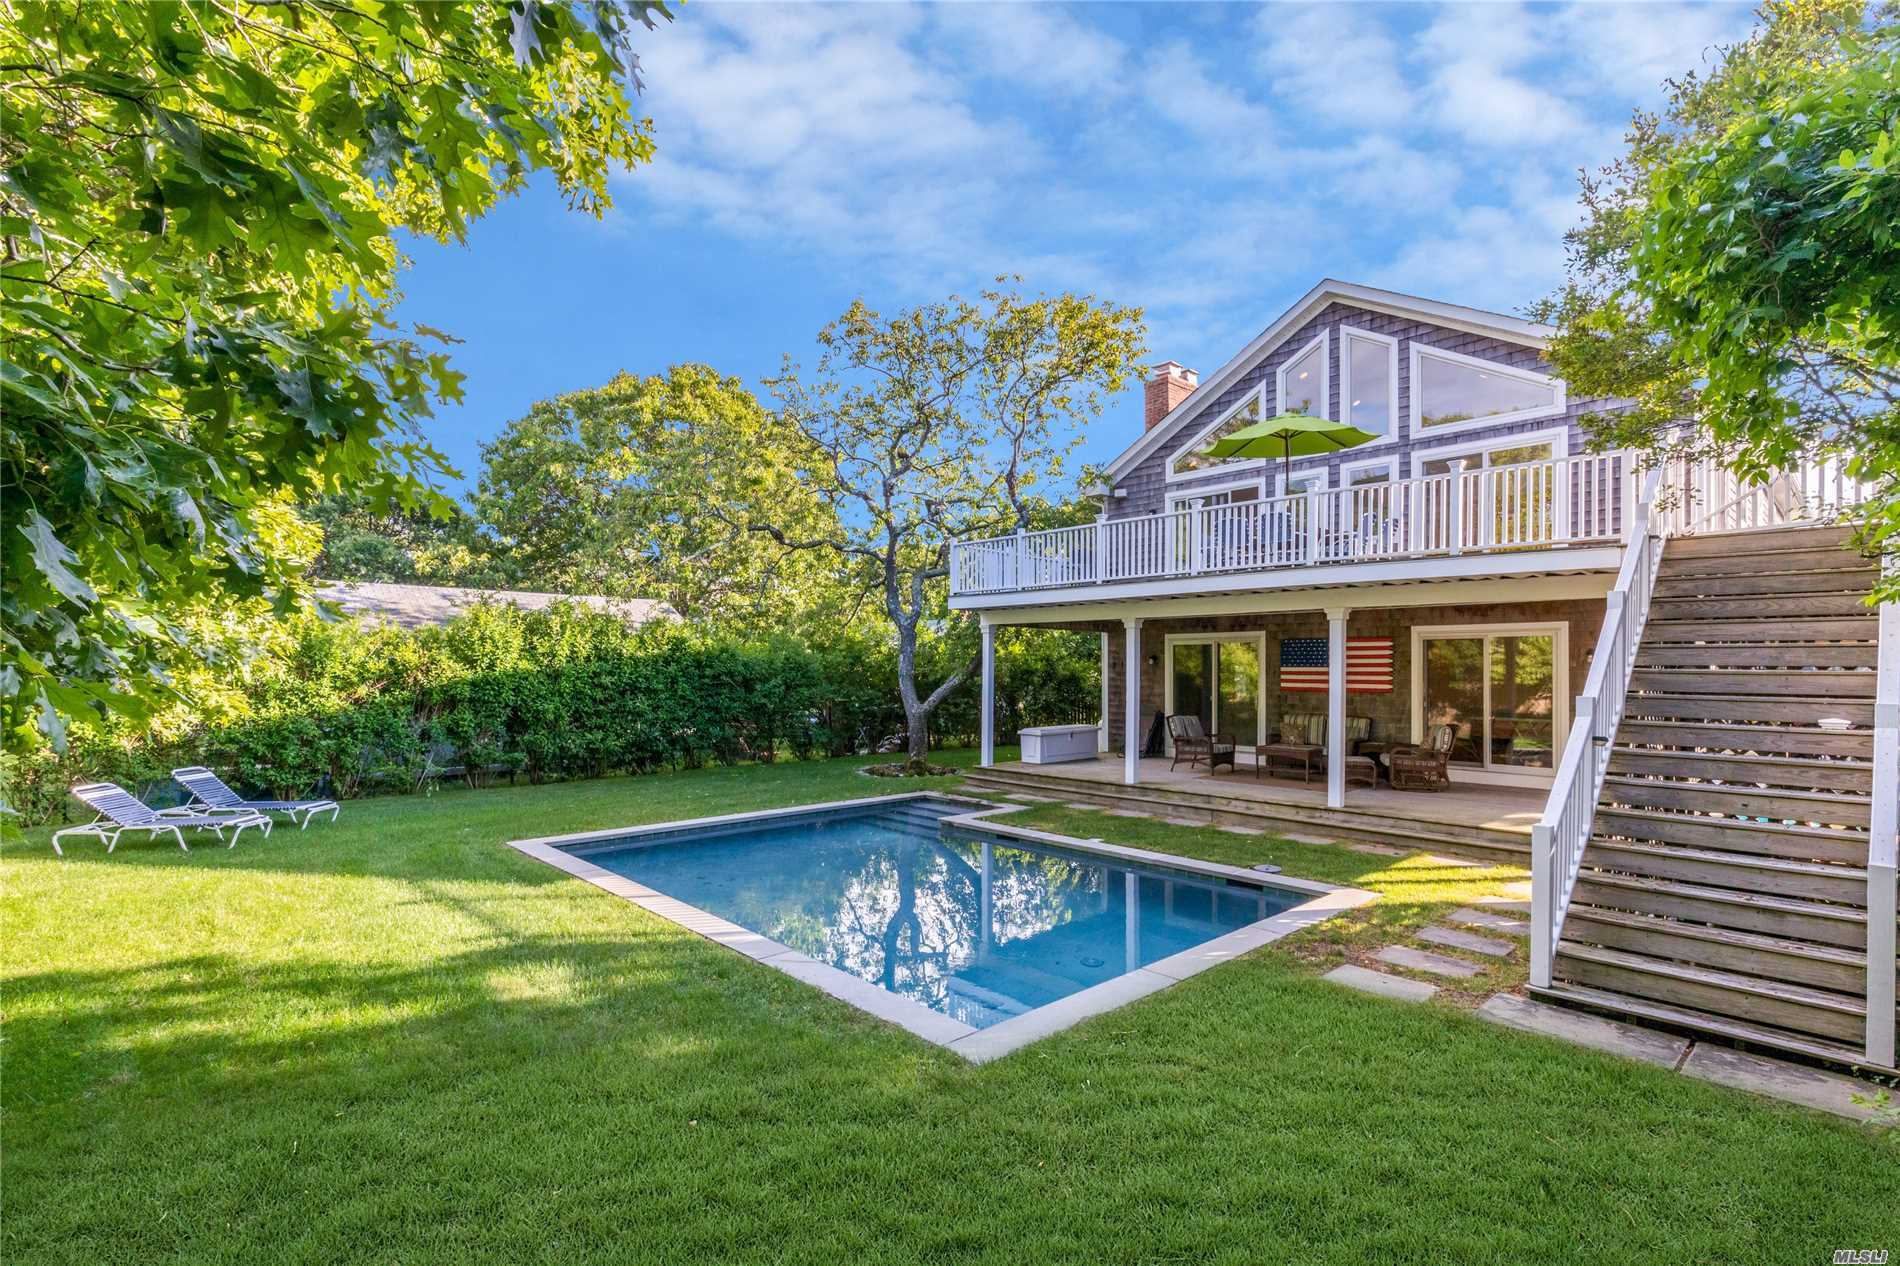 Photo of home for sale at 21 Mulford Ave, Montauk NY